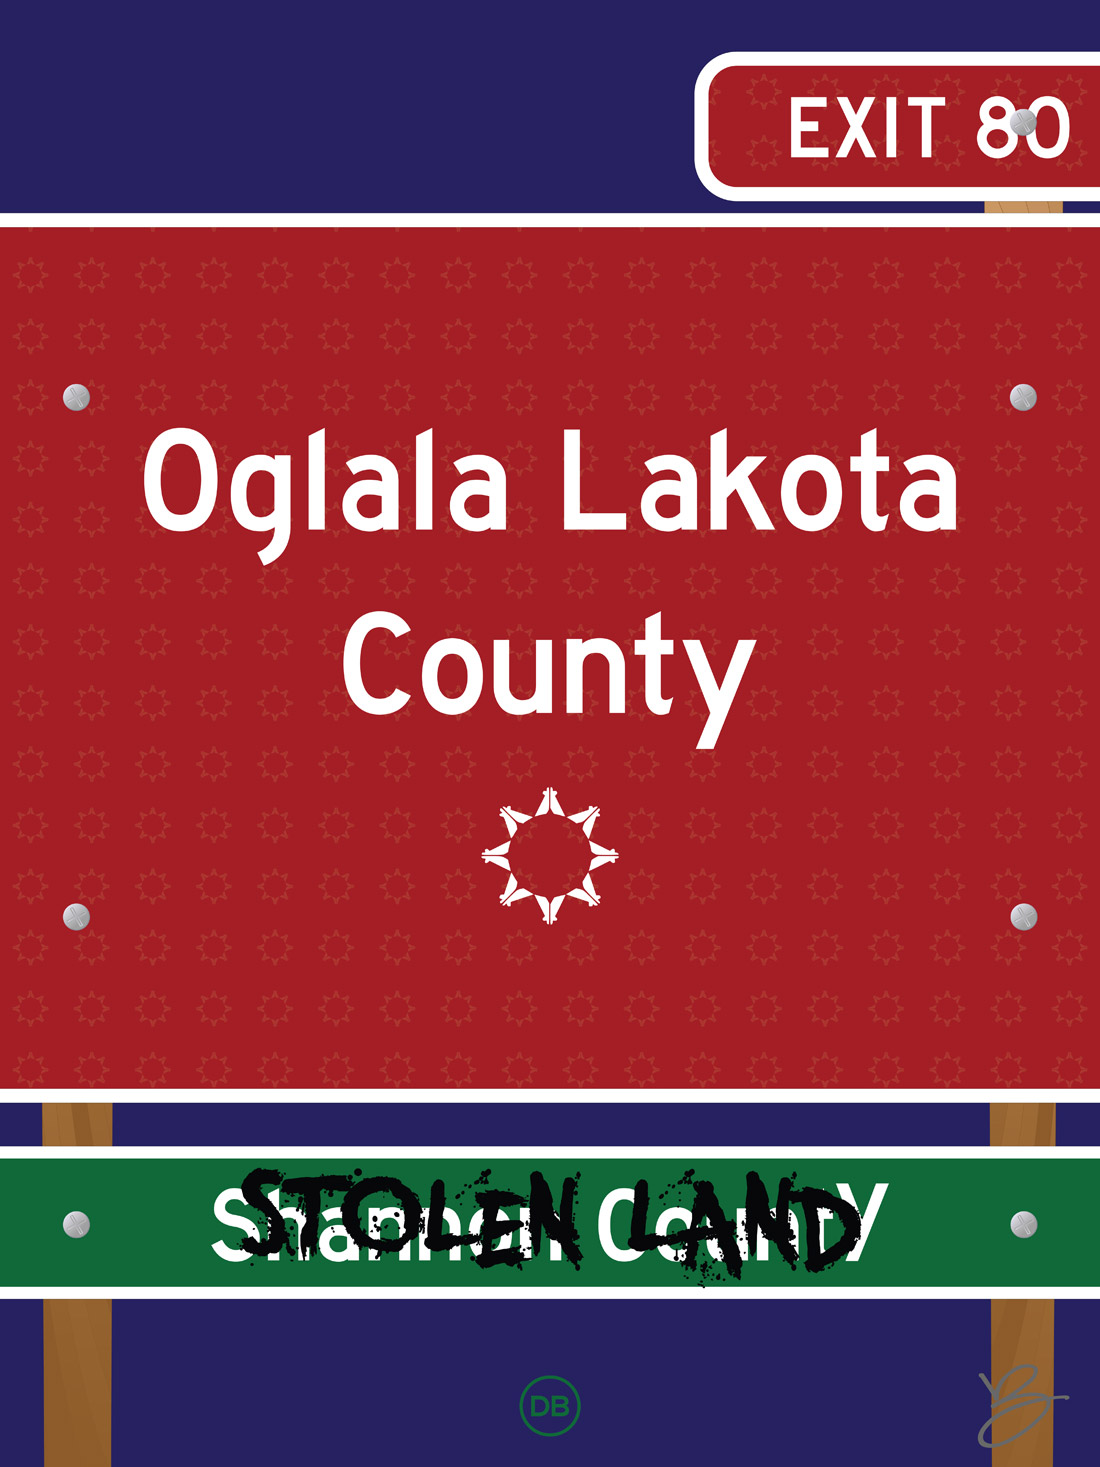 David Bernie Oglala Lakota County Indian Country 52 Week 45